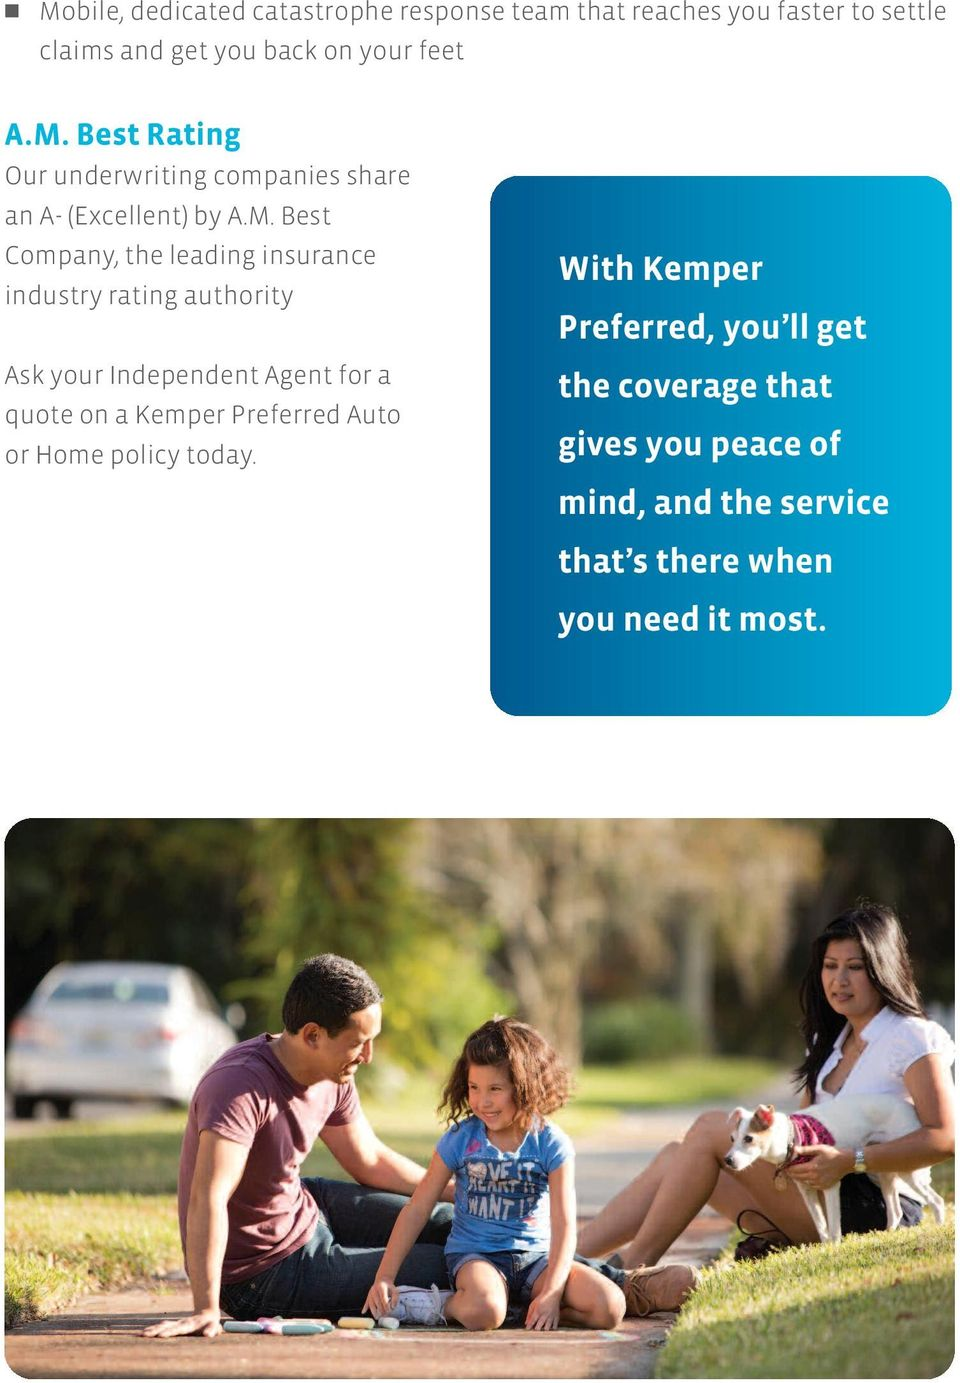 industry rating authority Ask your Independent Agent for a quote on a Kemper Preferred Auto or Home policy today.